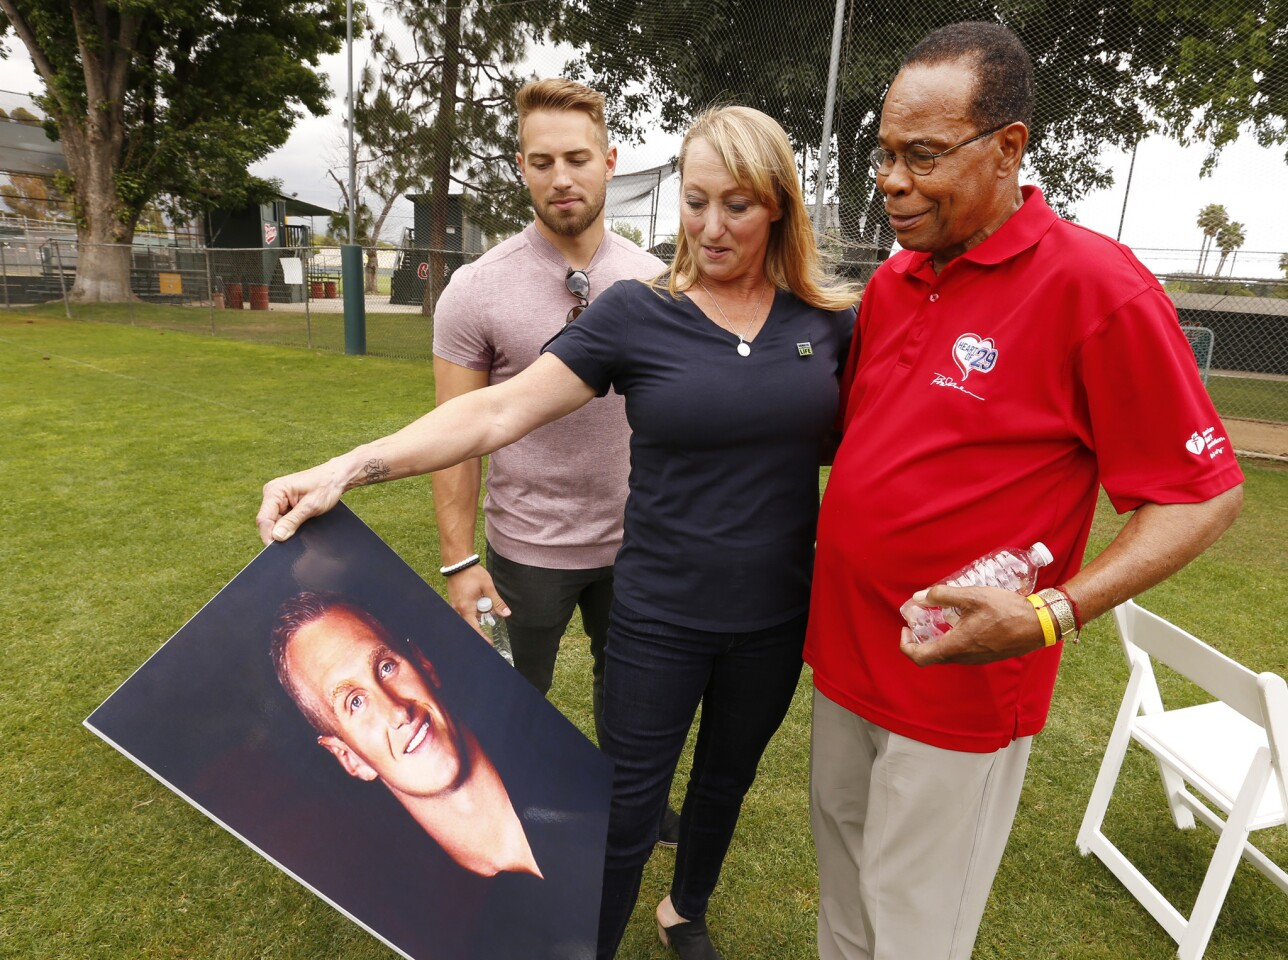 Rod Carew and Konrad Reuland families